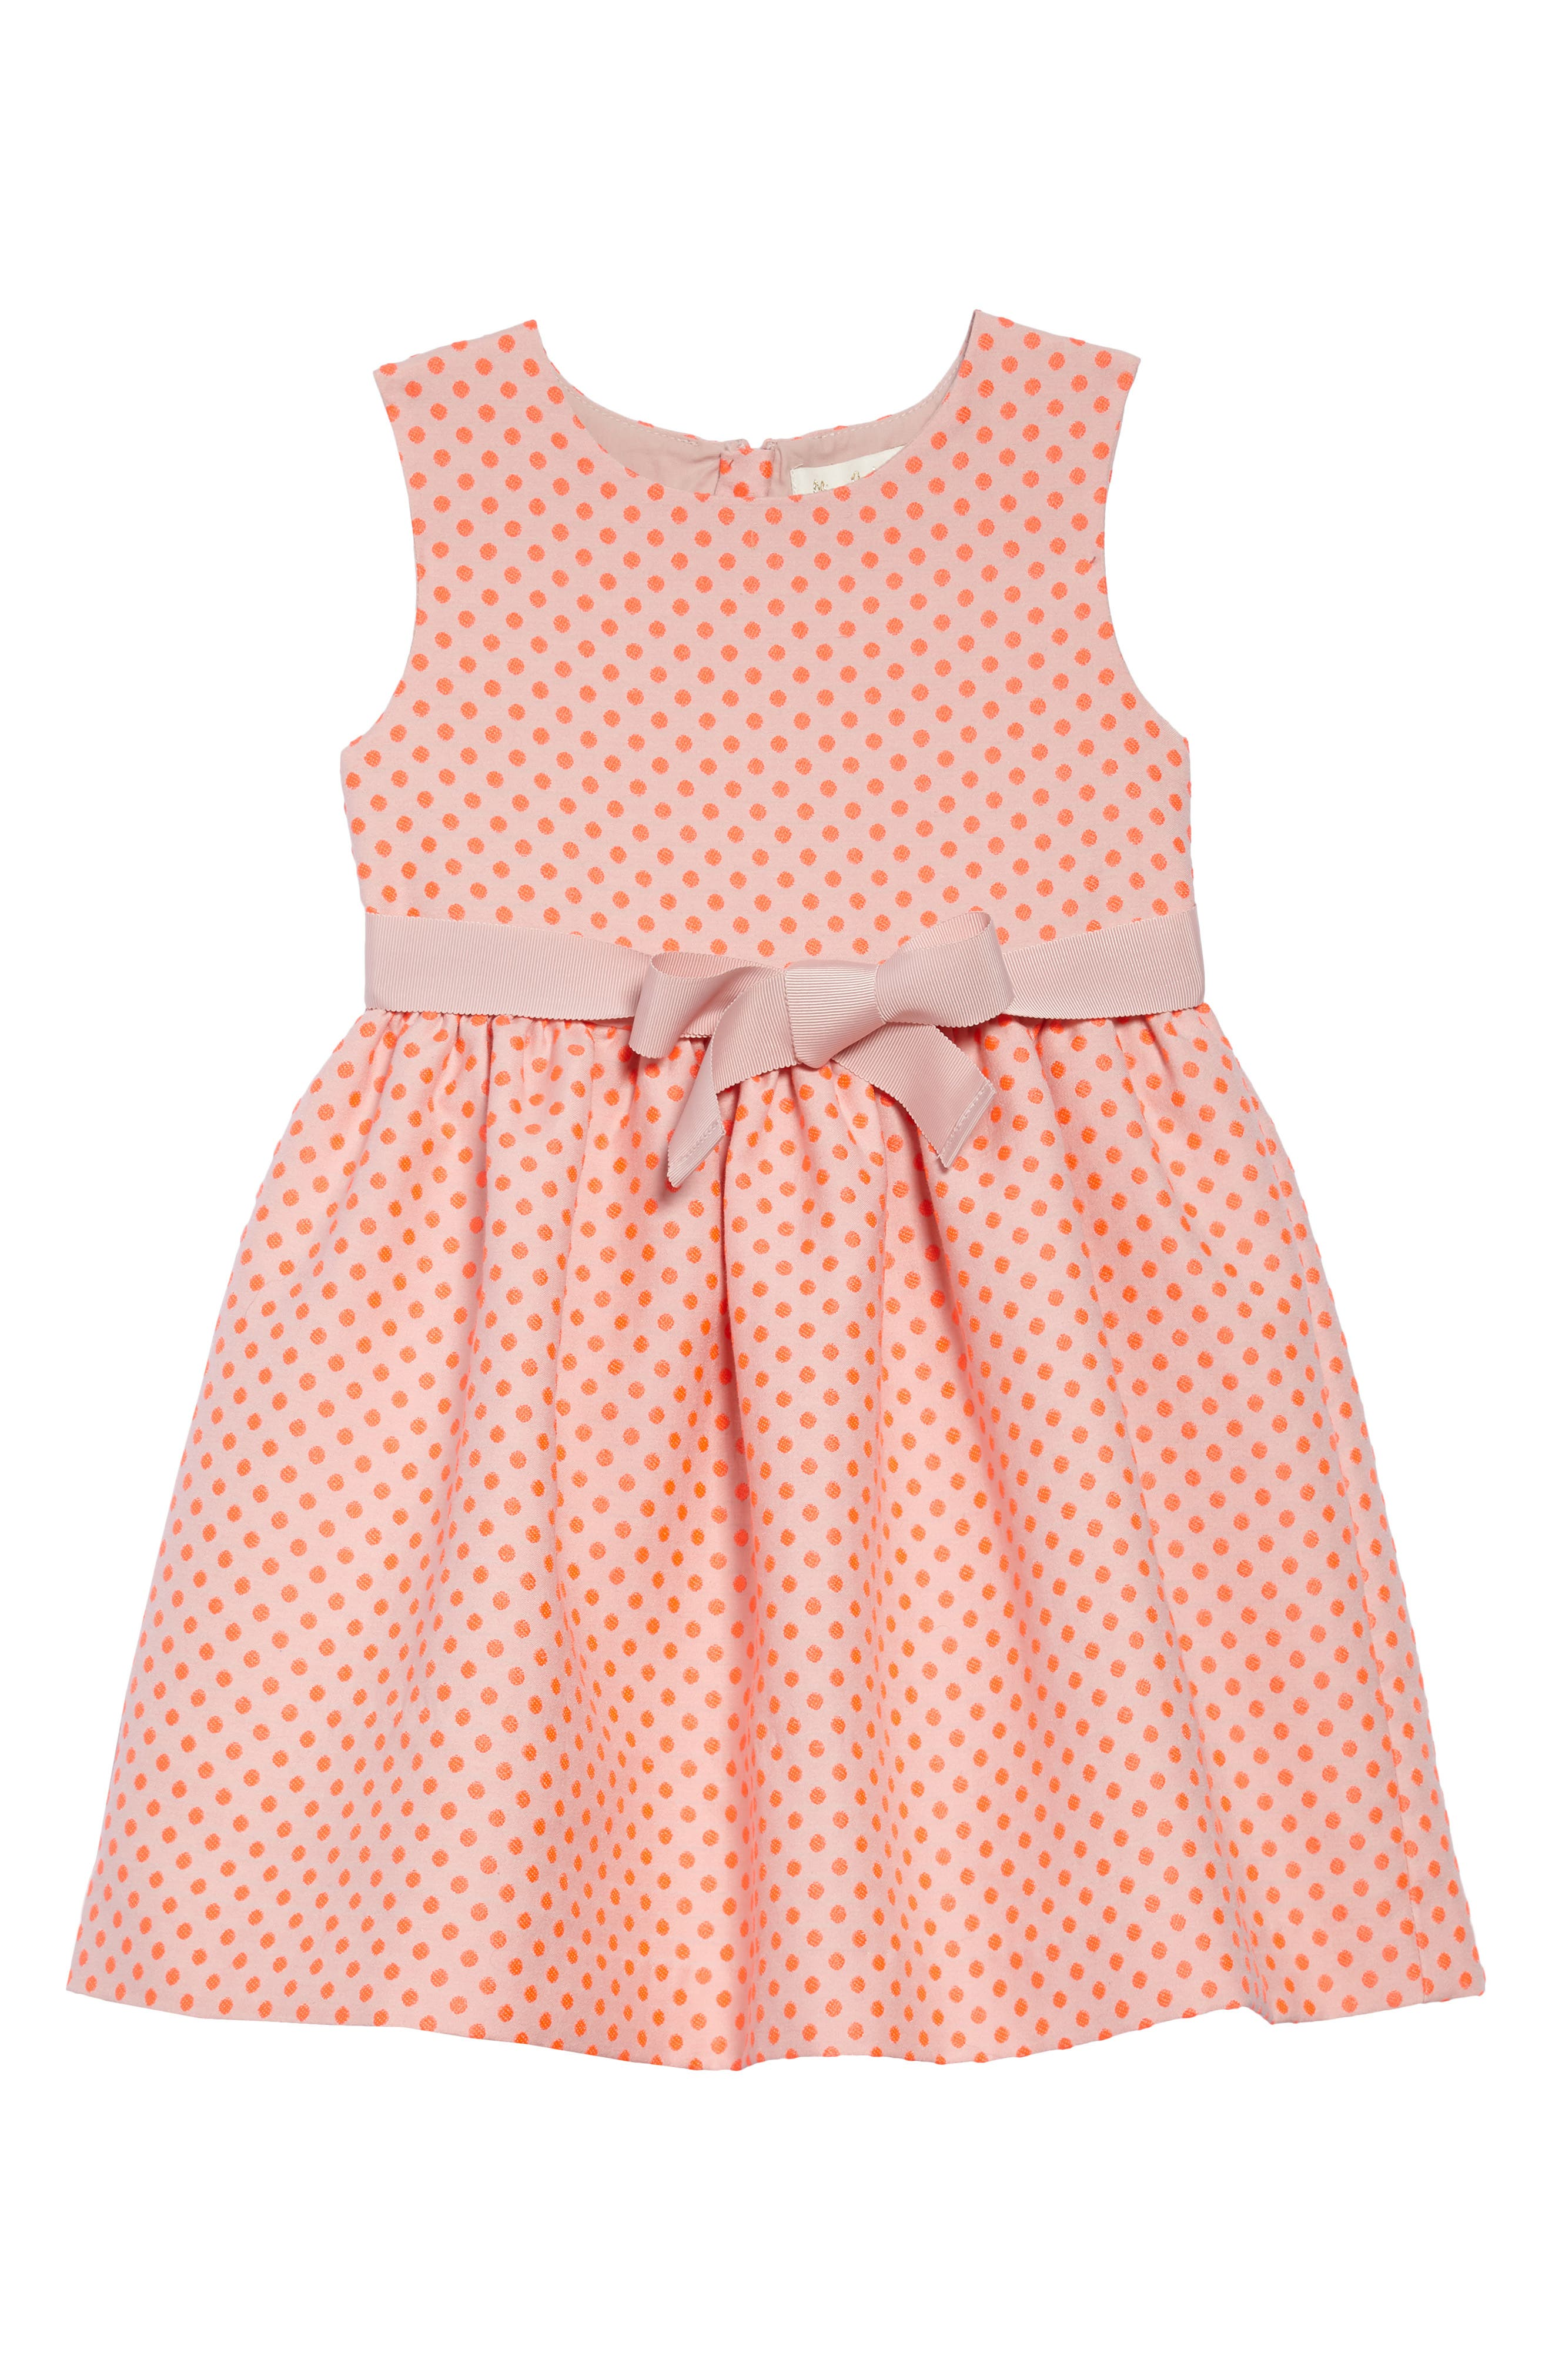 Dot Sleeveless Dress,                         Main,                         color, Pnkbright Flamingo Pink Spot